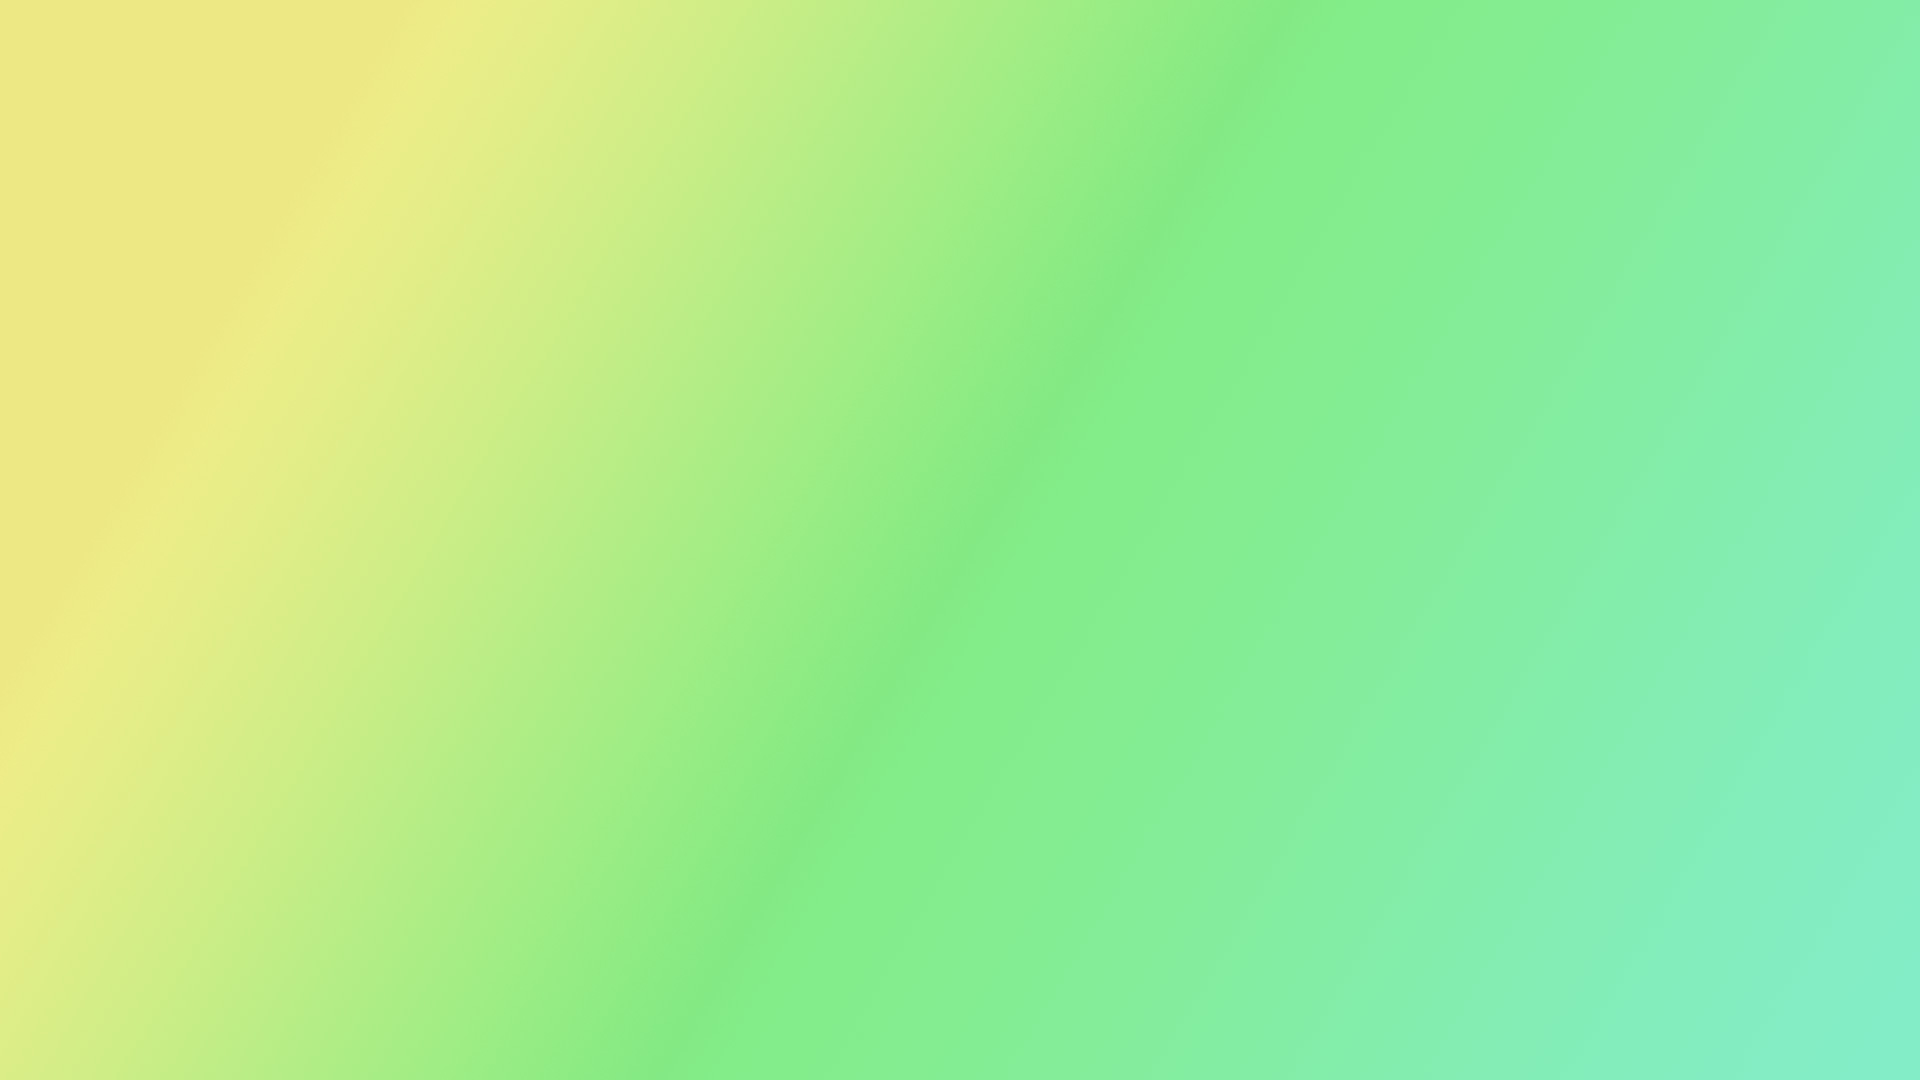 green-yellow-Presentation-Gradient-Background